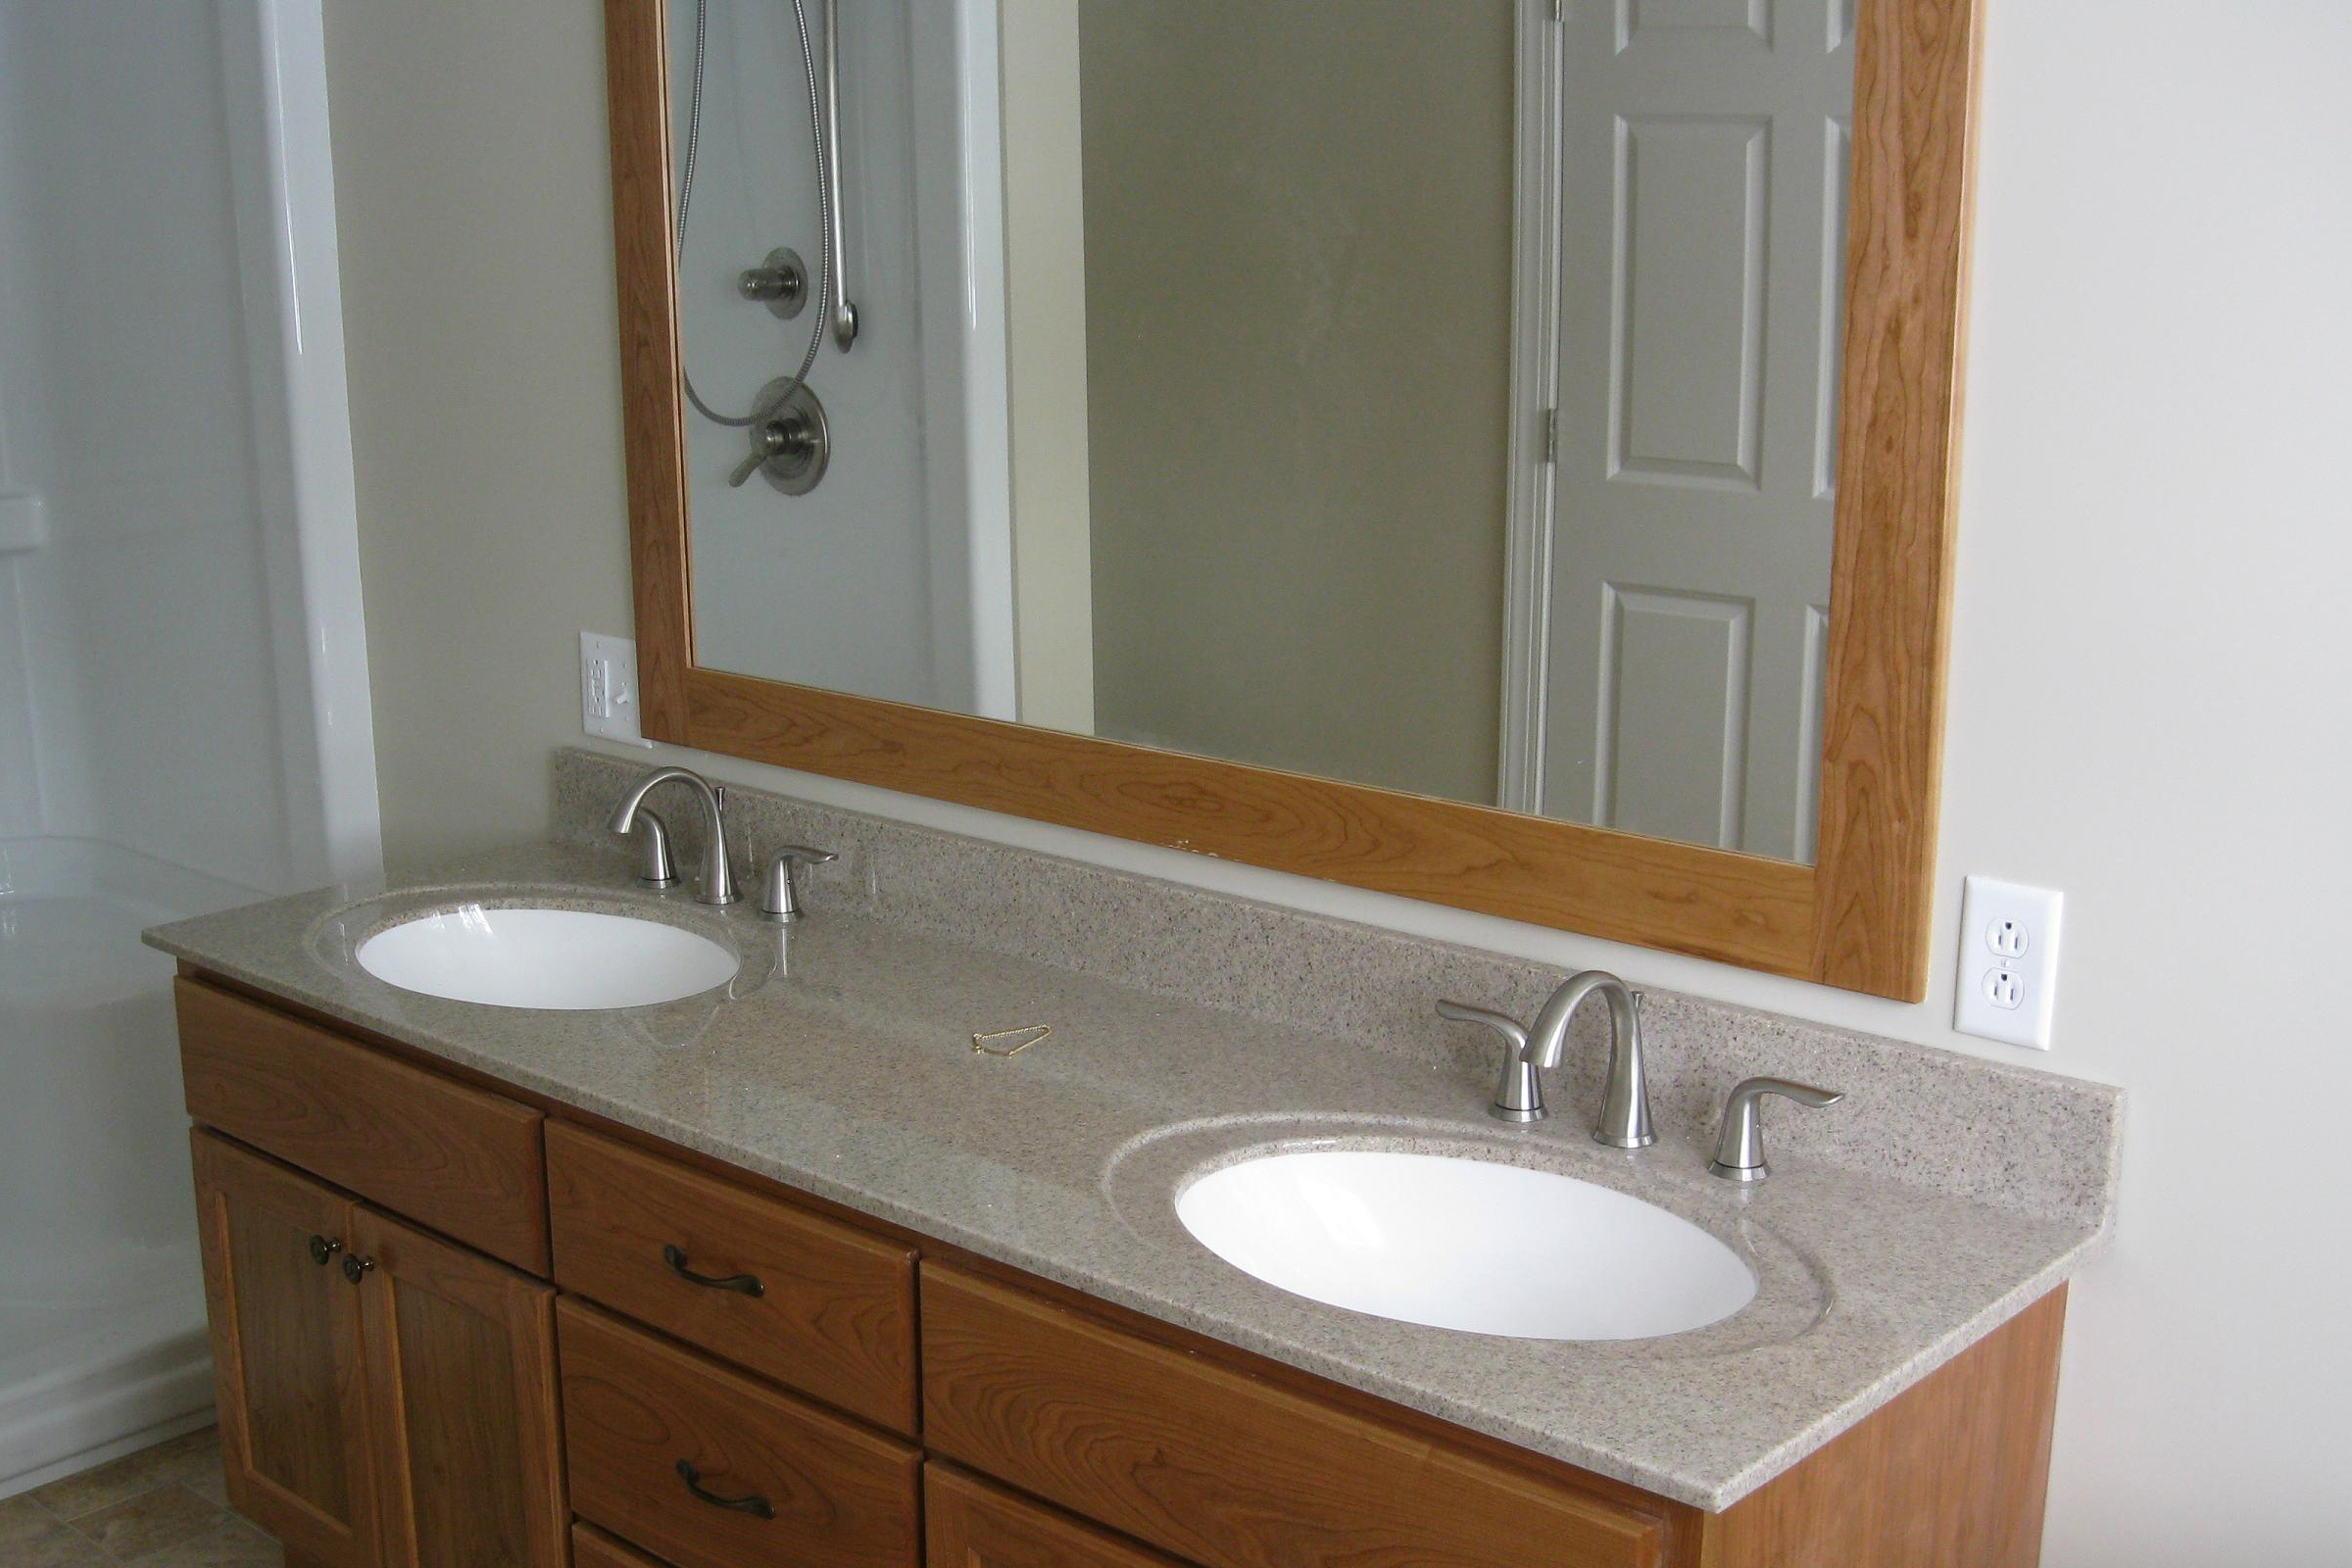 Added two new sinks to an existing bathroom remodel.